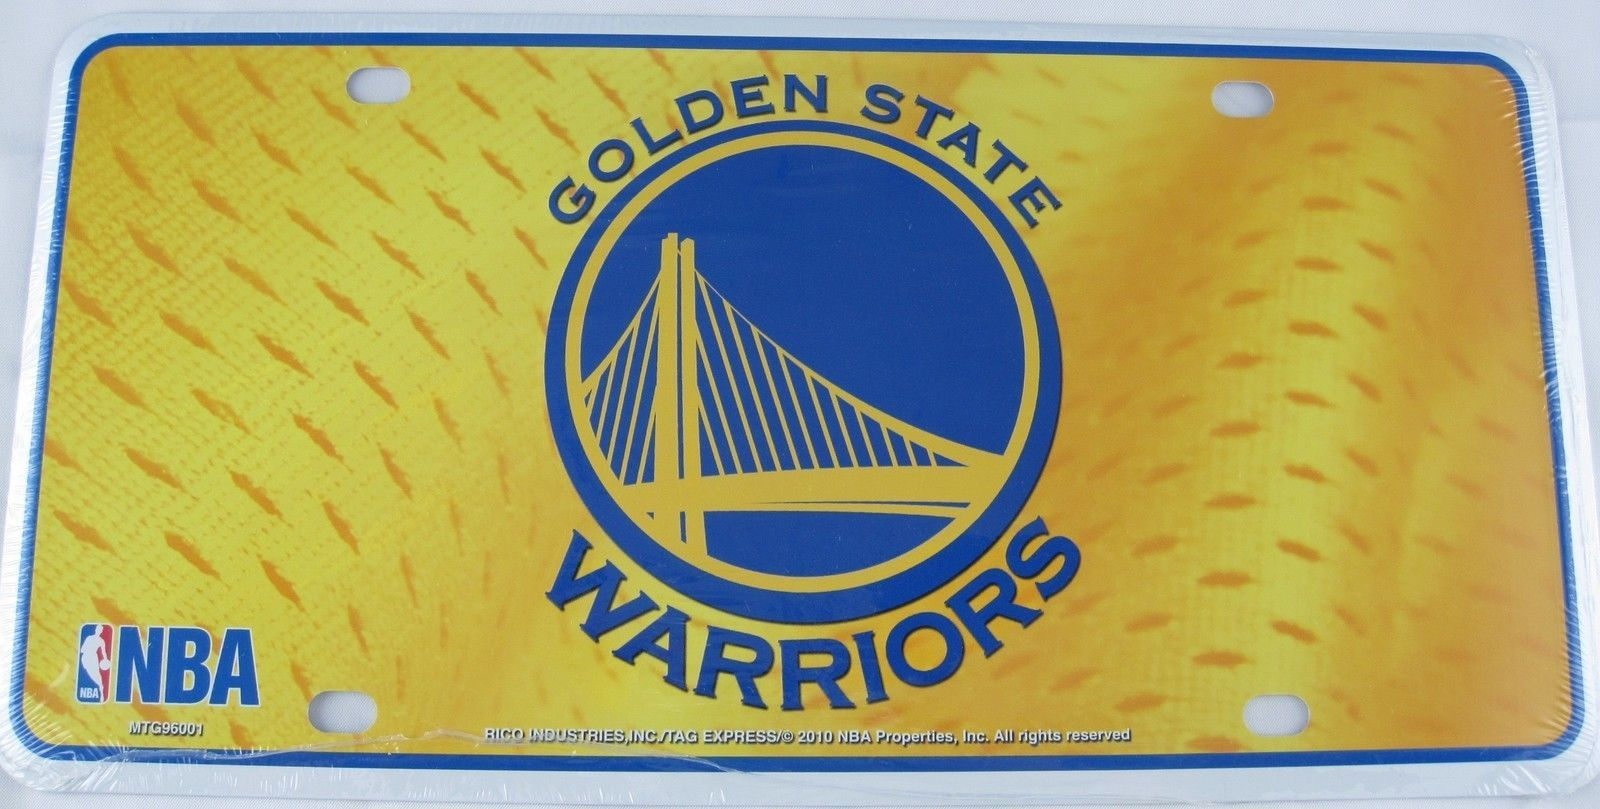 GOLDEN STATE WARRIORS LICENSE PLATE METAL BASKETBALL TRUCK AUTO NBA ...